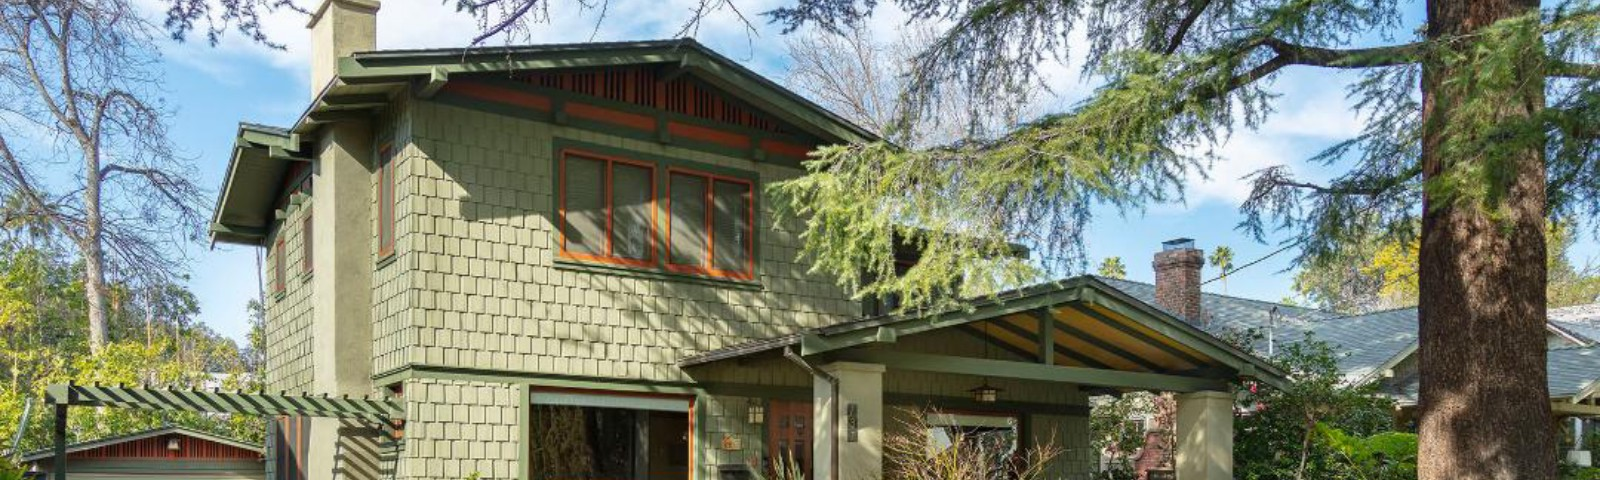 2 story Arts and Crafts bungalow style home, Pasadena CA